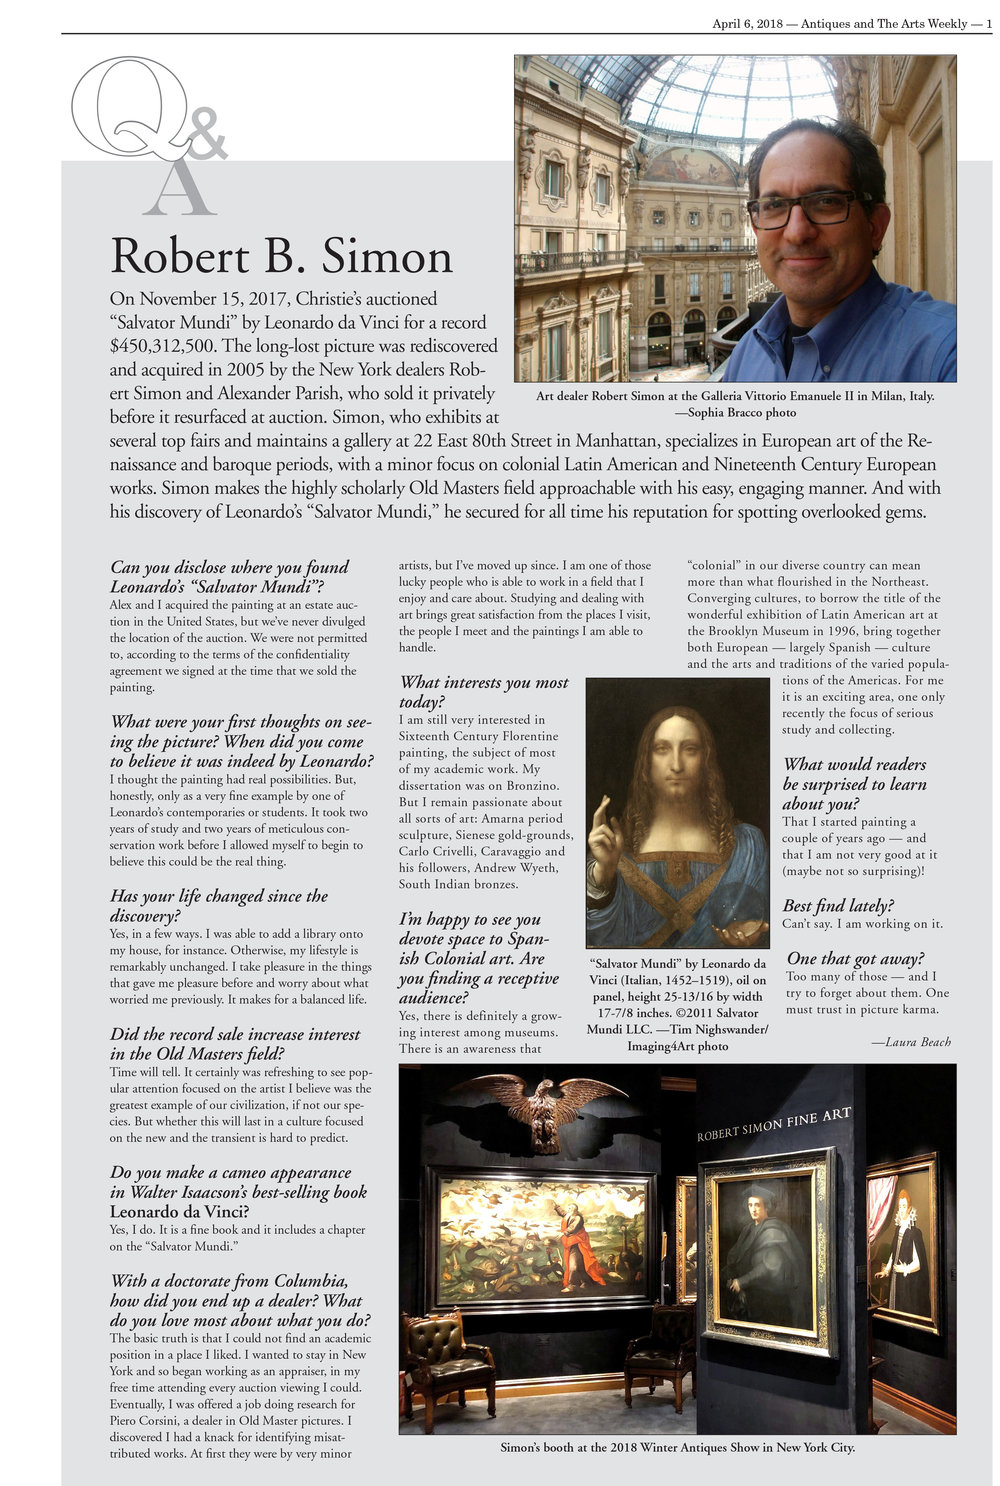 Antiques and the Arts Weekly.jpg